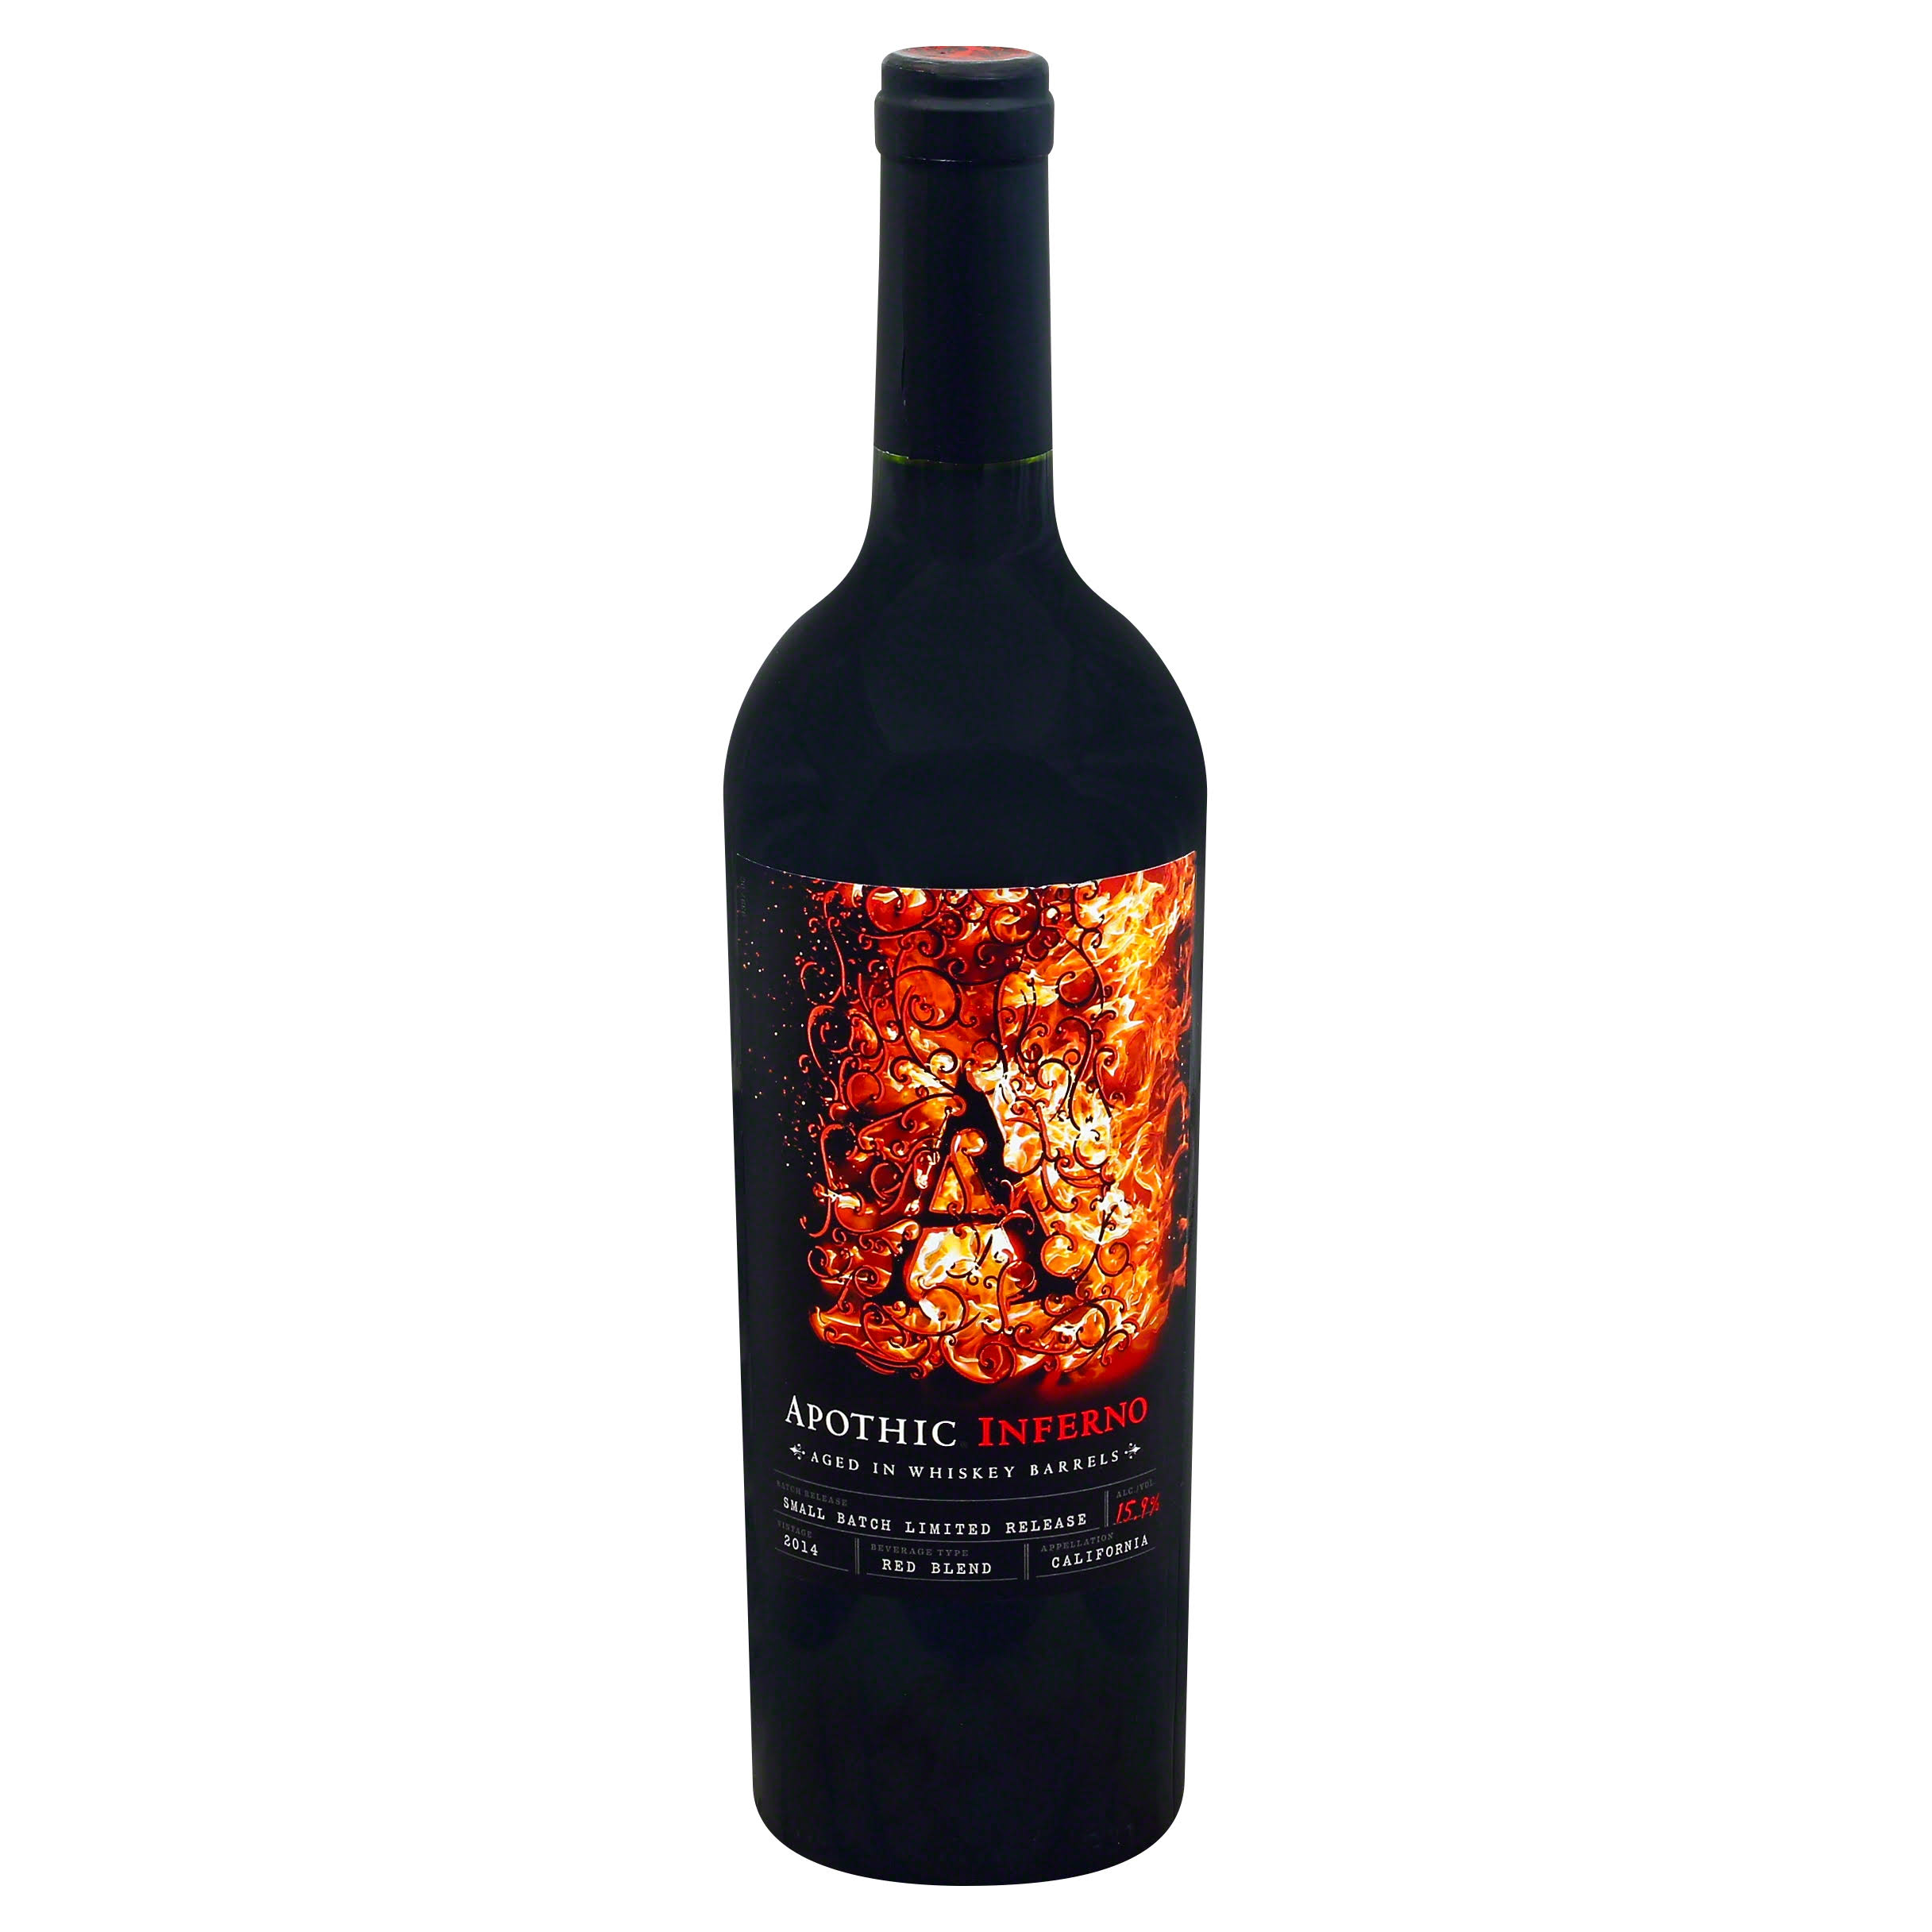 Apothic Inferno Aged in Whiskey Barrels - 750ml